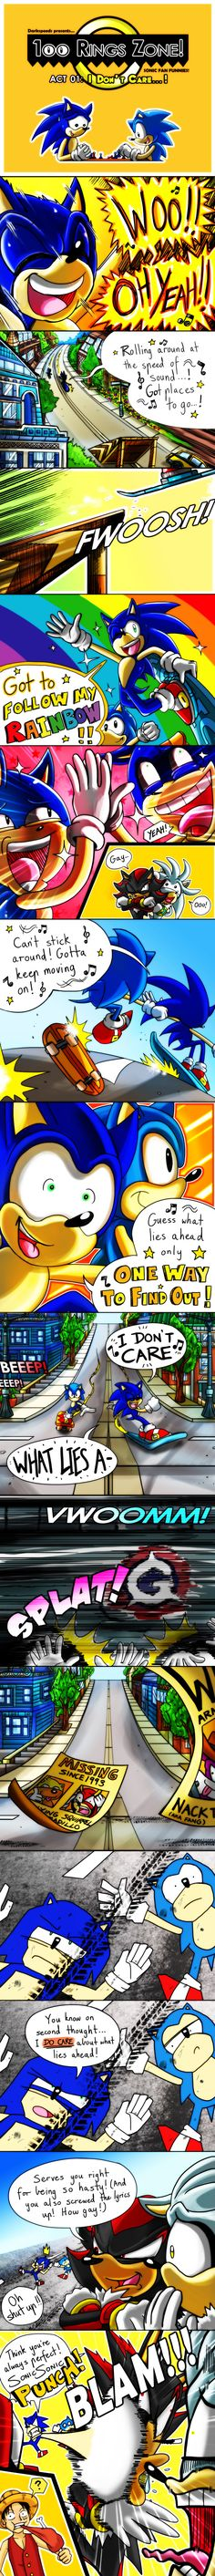 100 Rings Zone - Funnies 001 - 'I Don't Care' by ElsonWong